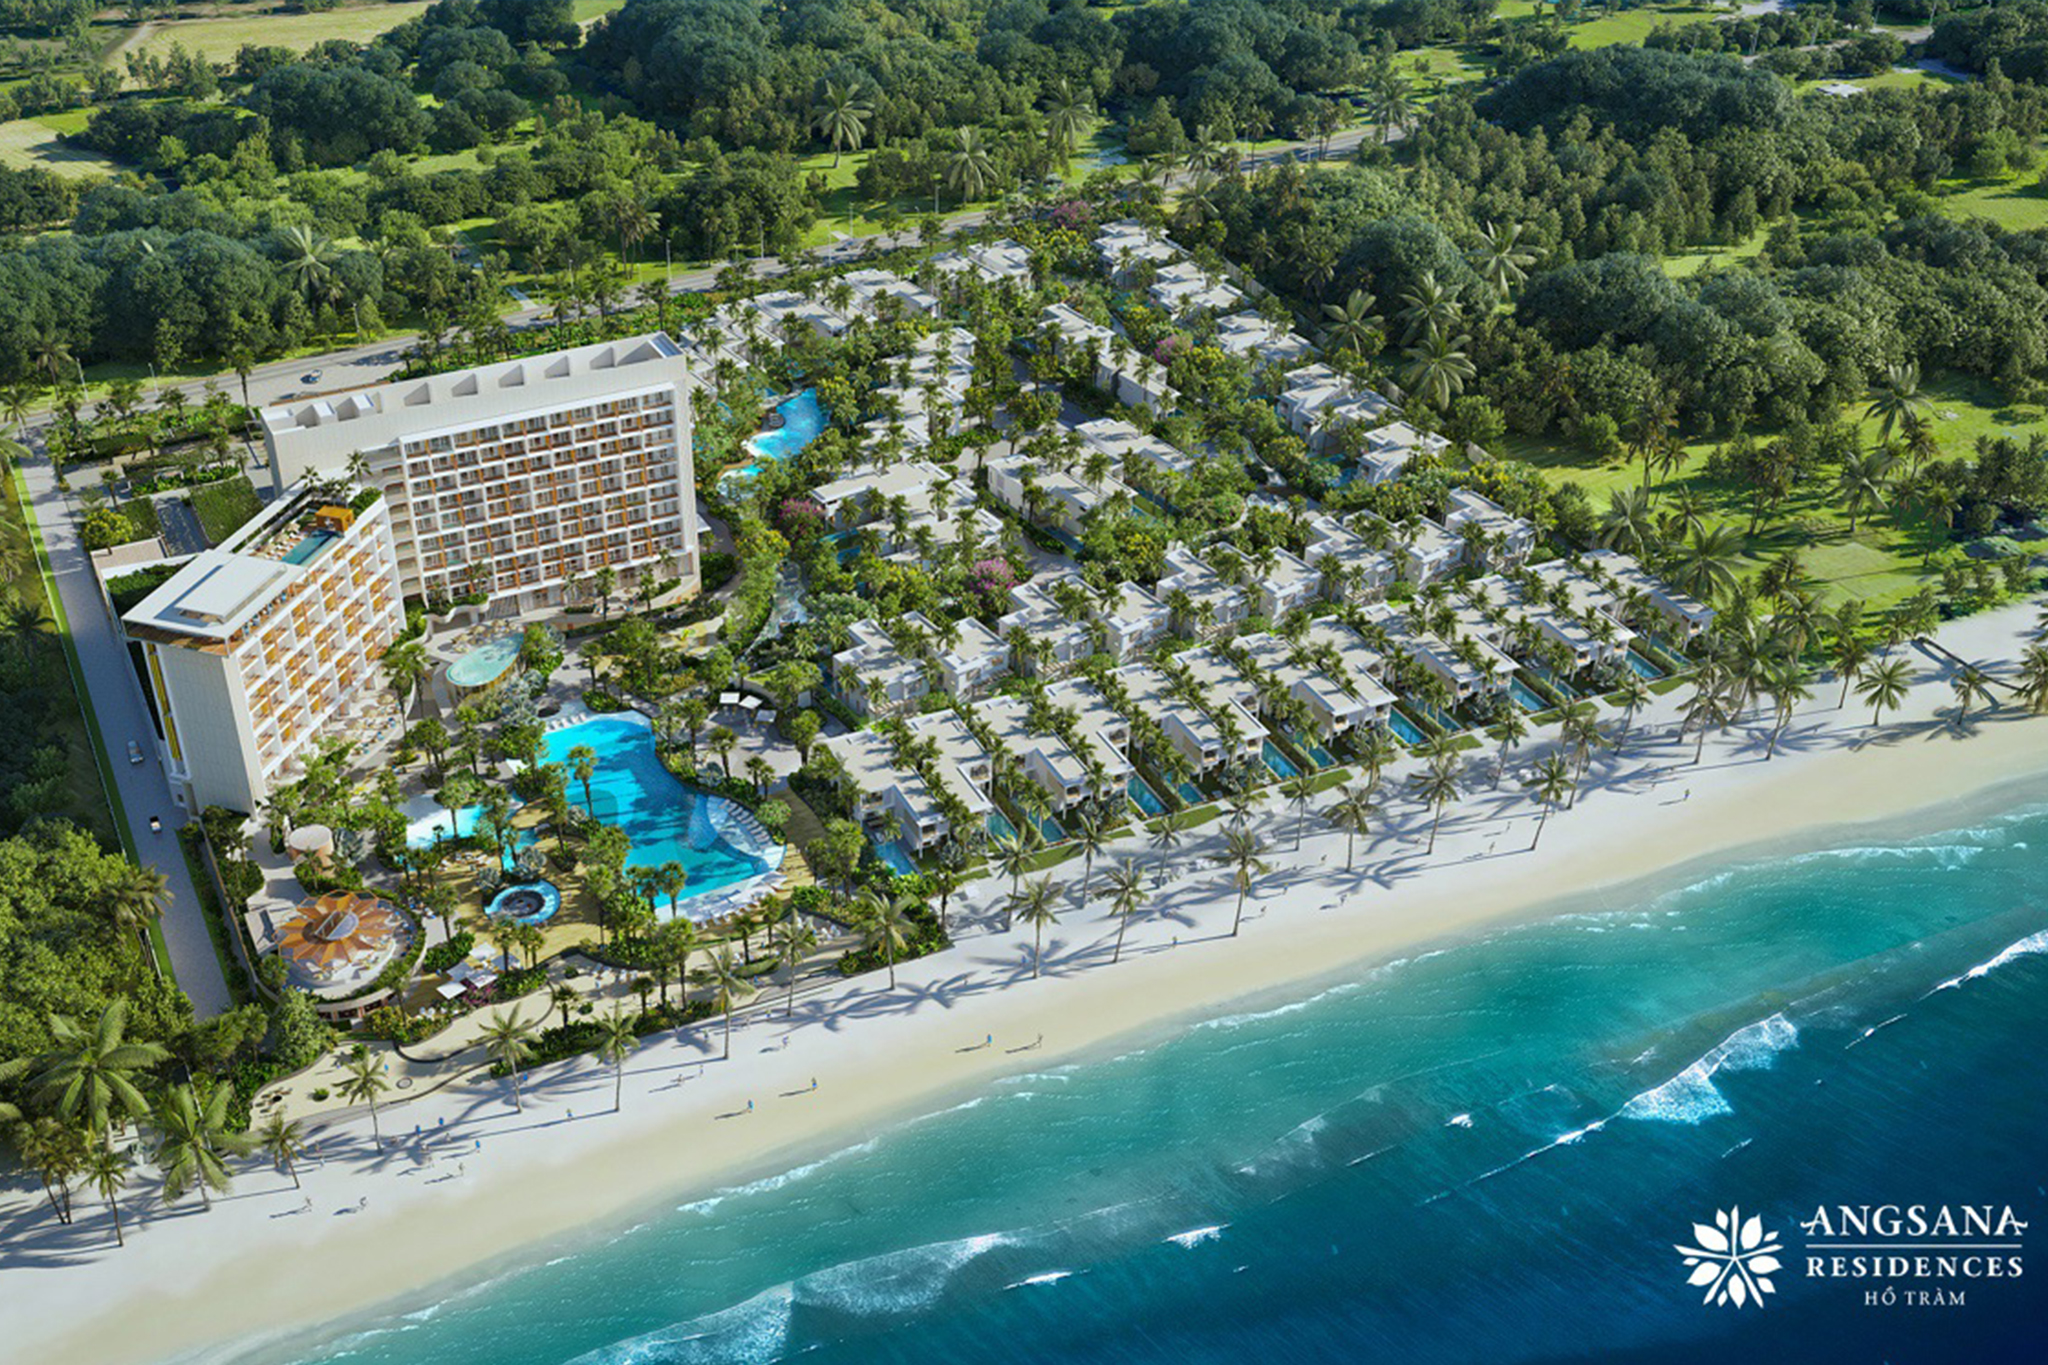 RESORT VALUE AND INVESTMENT IN ANGSANA RESIDENCES HO TRAM PROJECT